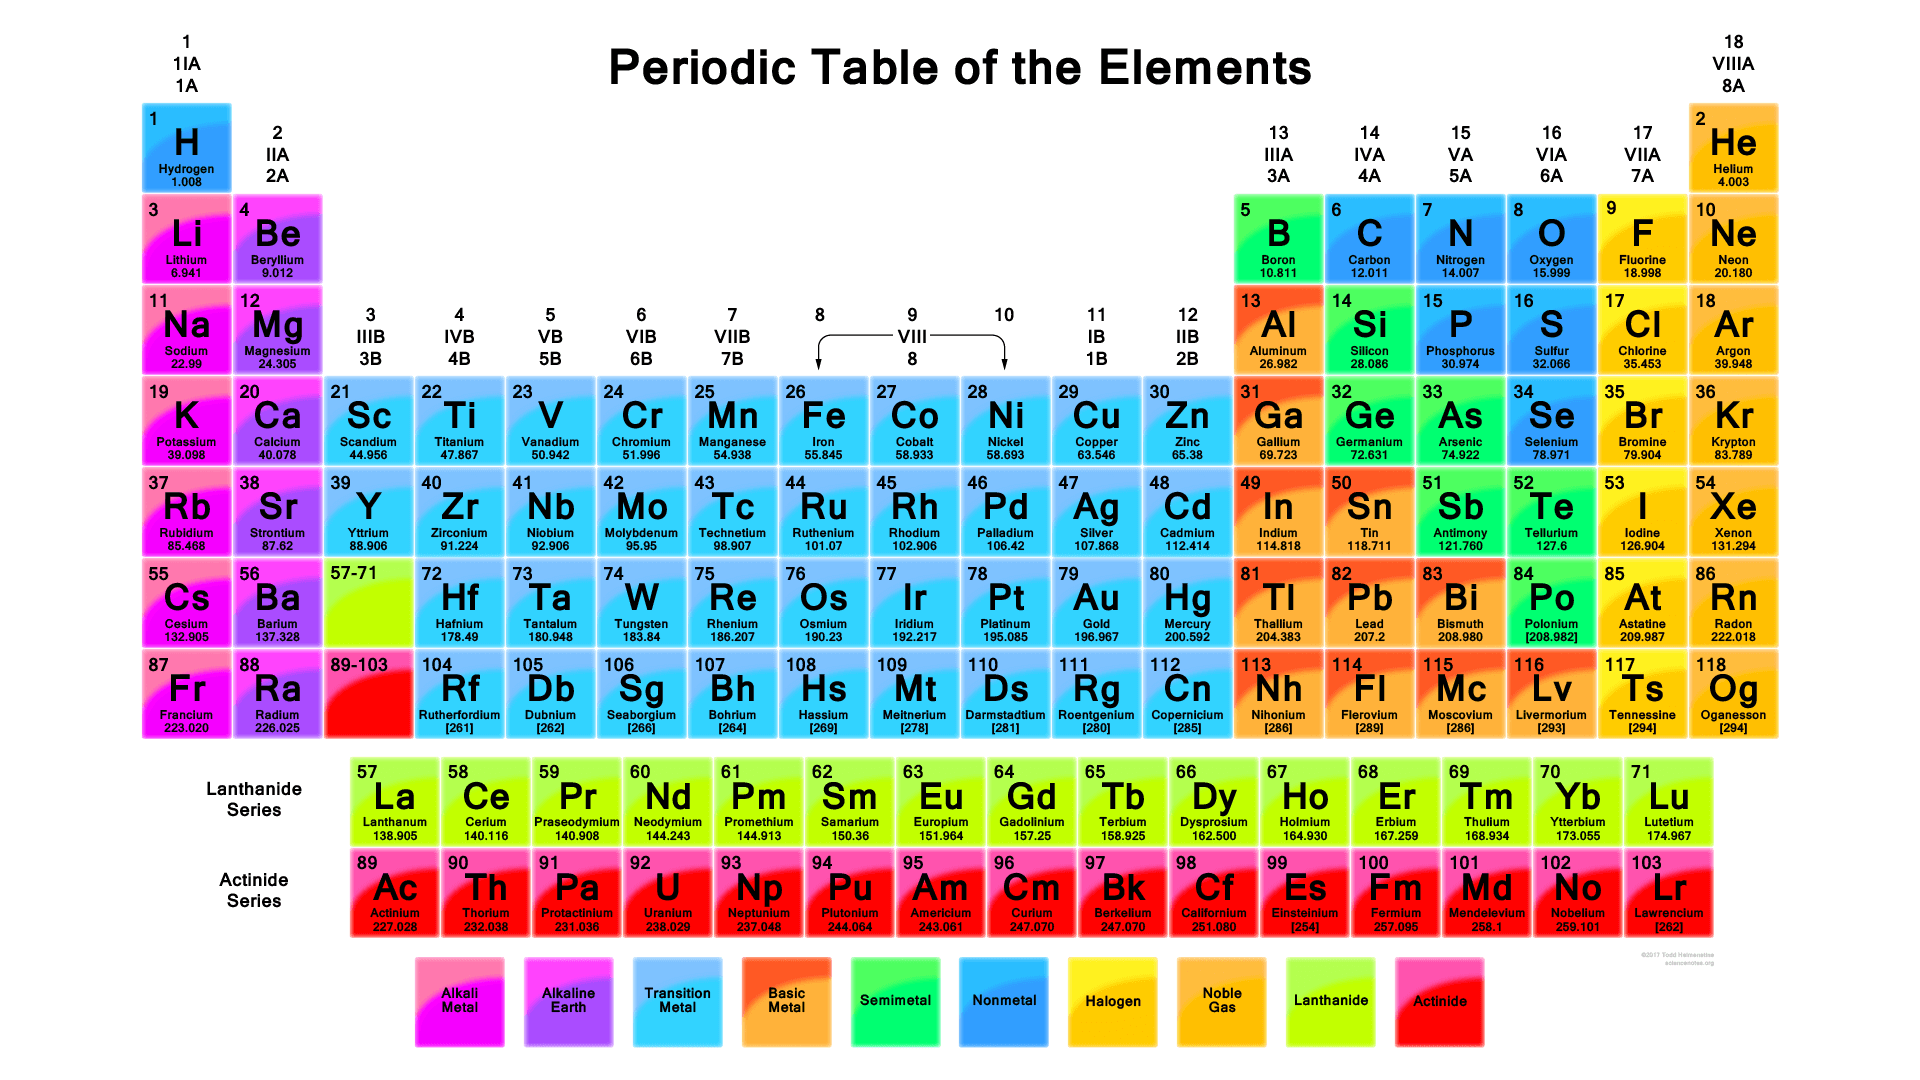 Periodic table pdf 2018 edition with 118 elements vibrant periodic table with 118 elements urtaz Gallery